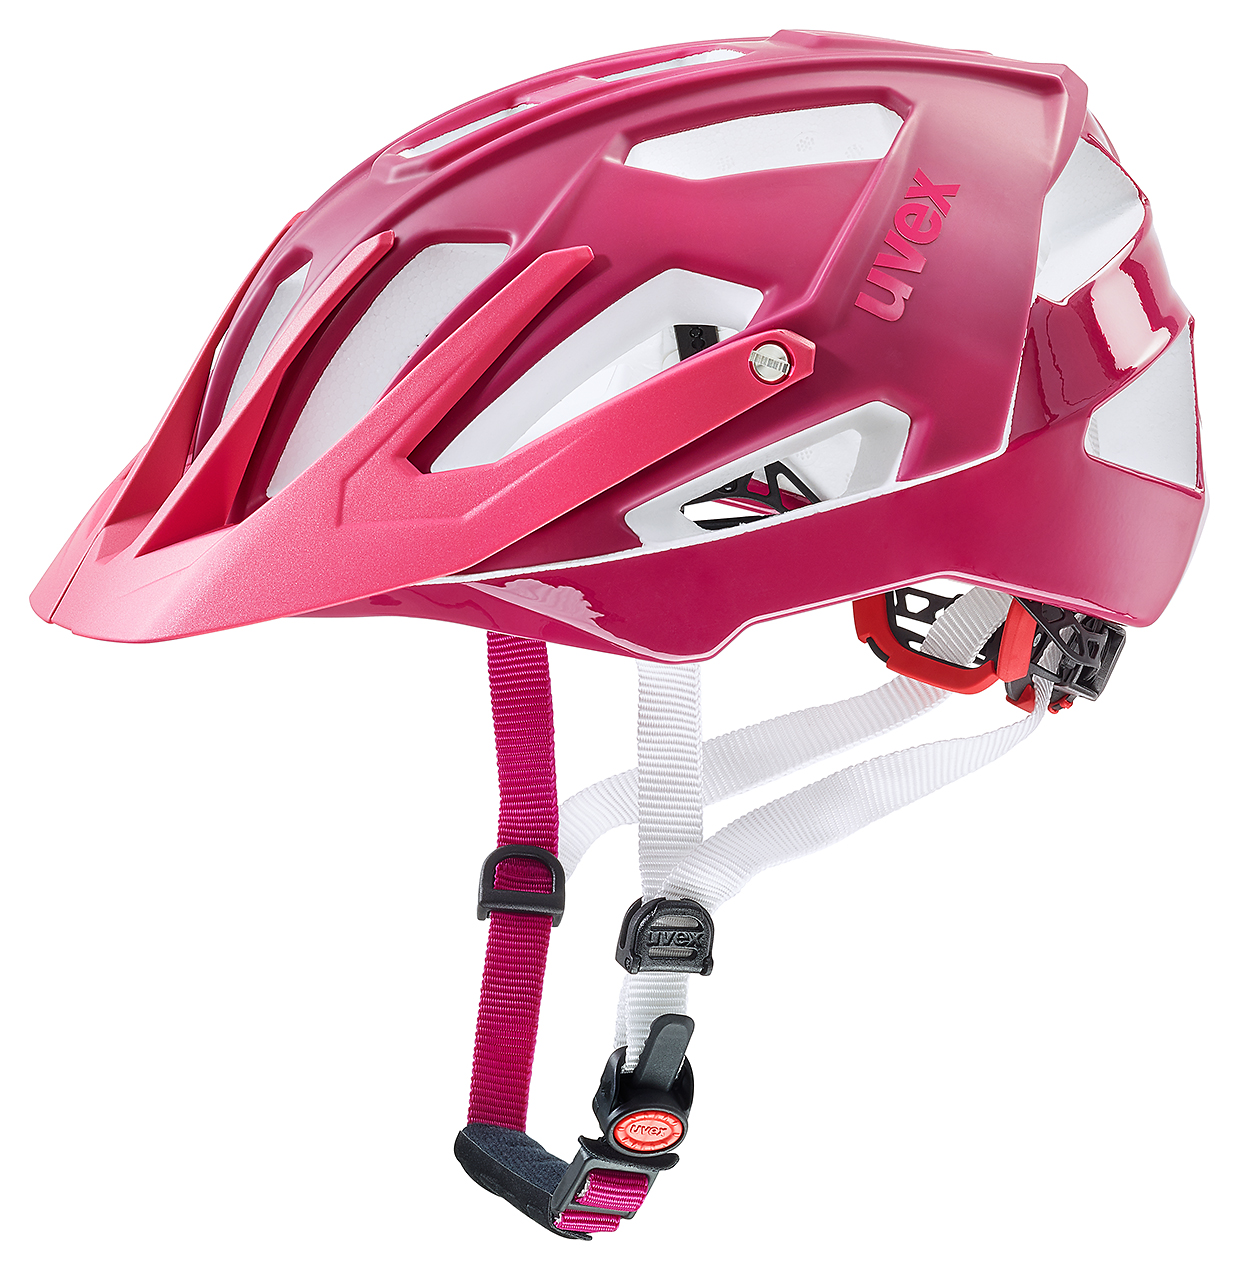 uvex quatro damen mtb fahrrad helm gr 52 57cm pink 2018. Black Bedroom Furniture Sets. Home Design Ideas